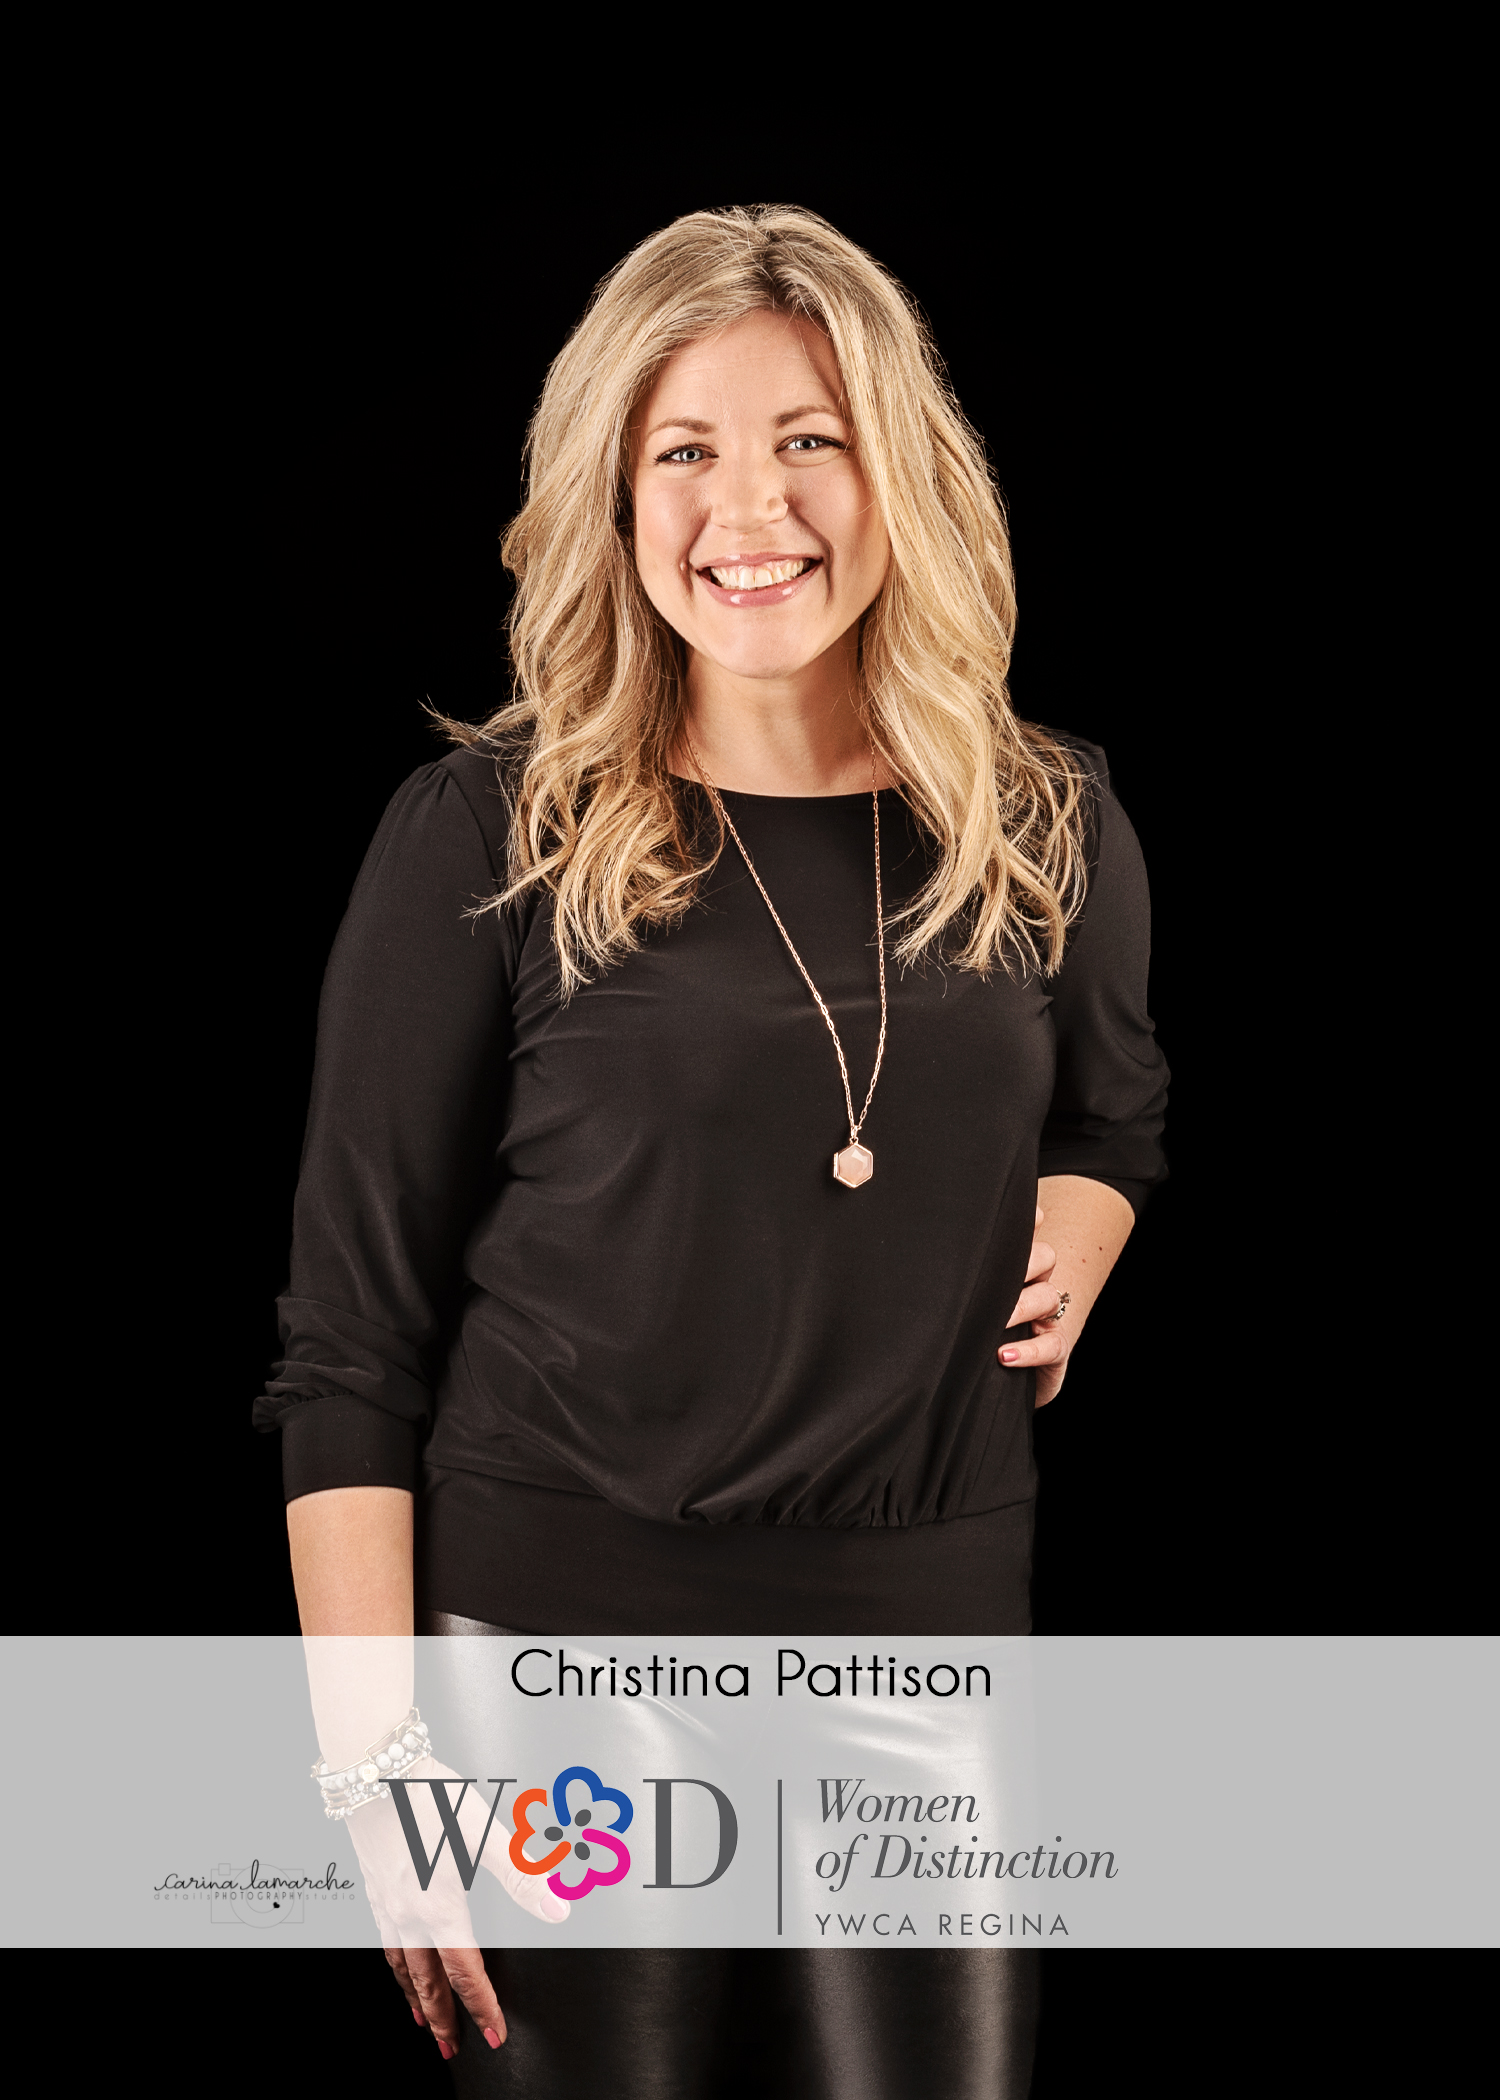 2019_043_Christina_Pattison_5x7.1.jpg